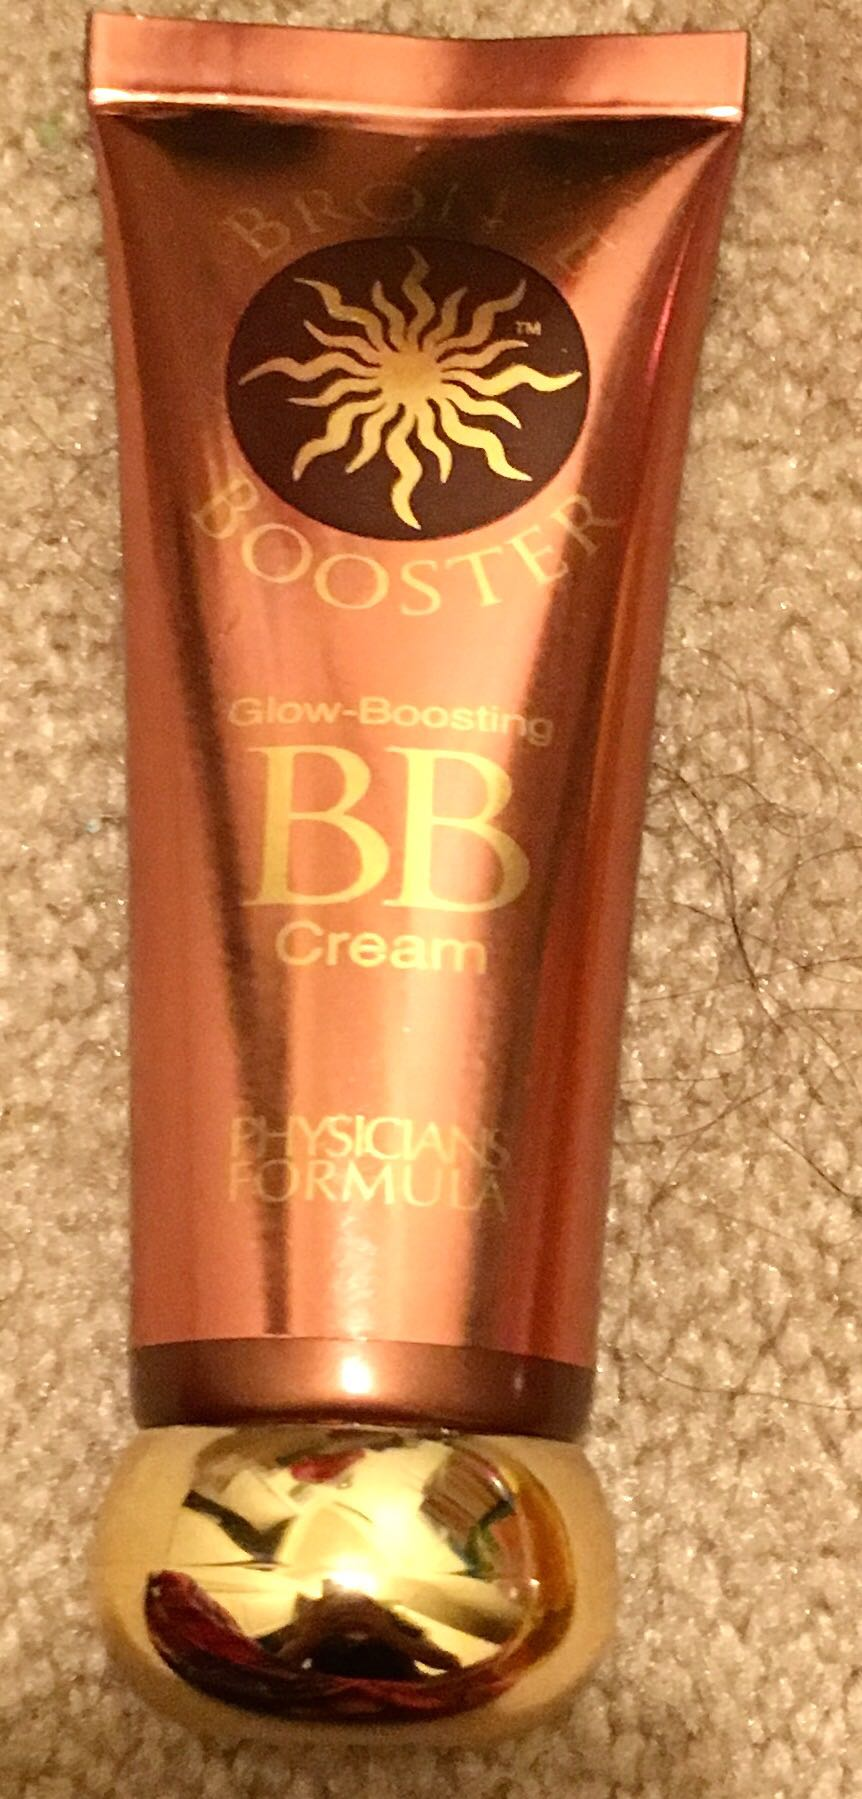 Physicians Formula Glow Boosting BB Cream Foundation Medium to Deep New